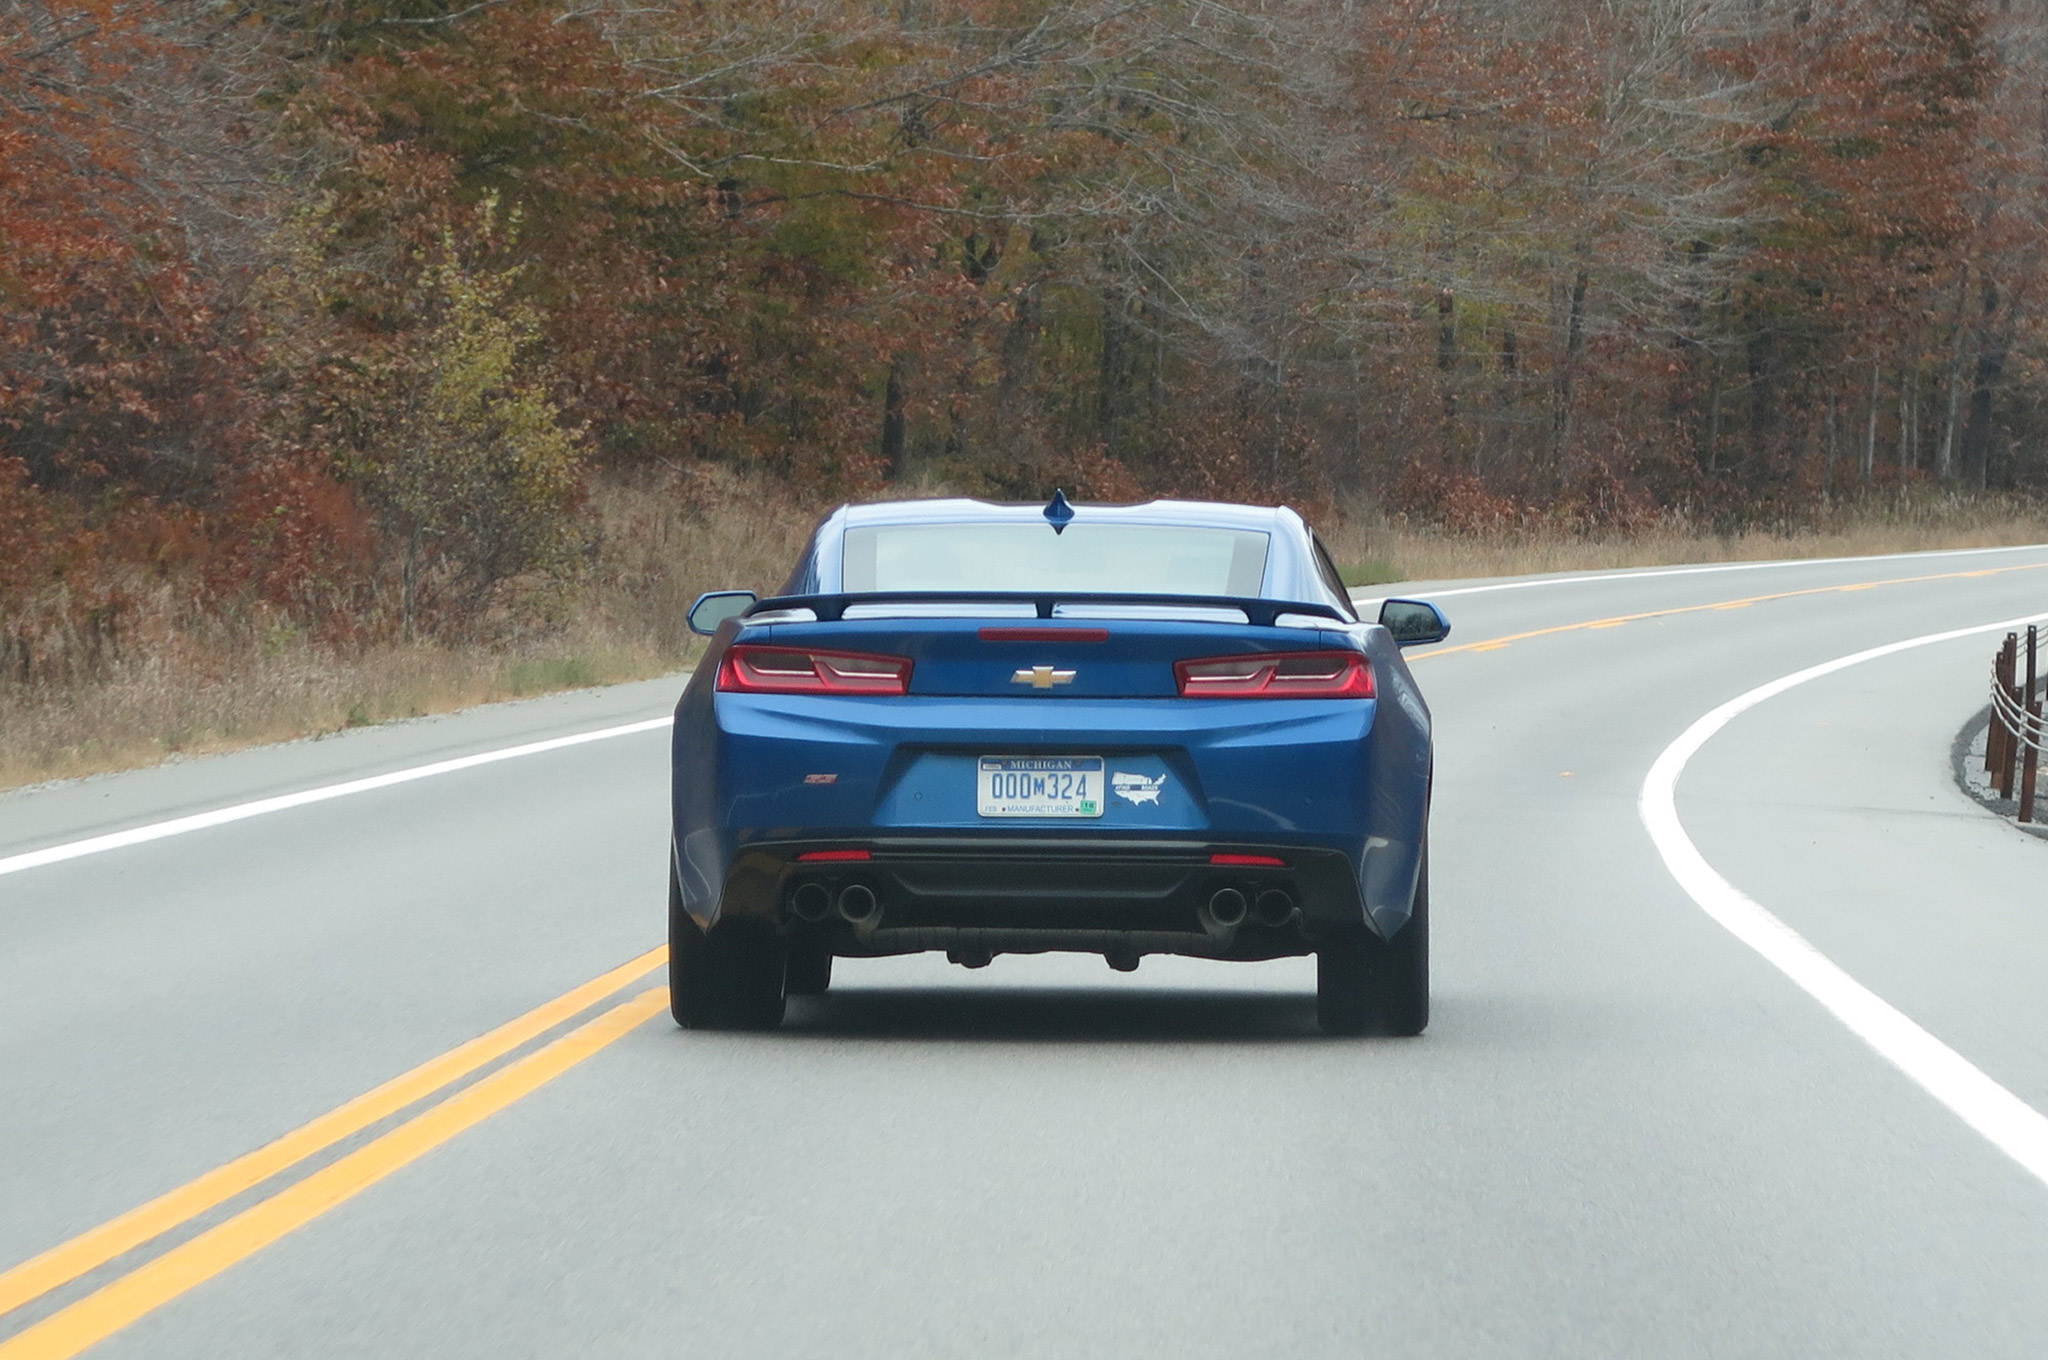 Cruising through the Adirondacks in the fall made for a great drive, but the Camaro would have been a pleasure to drive anywhere.